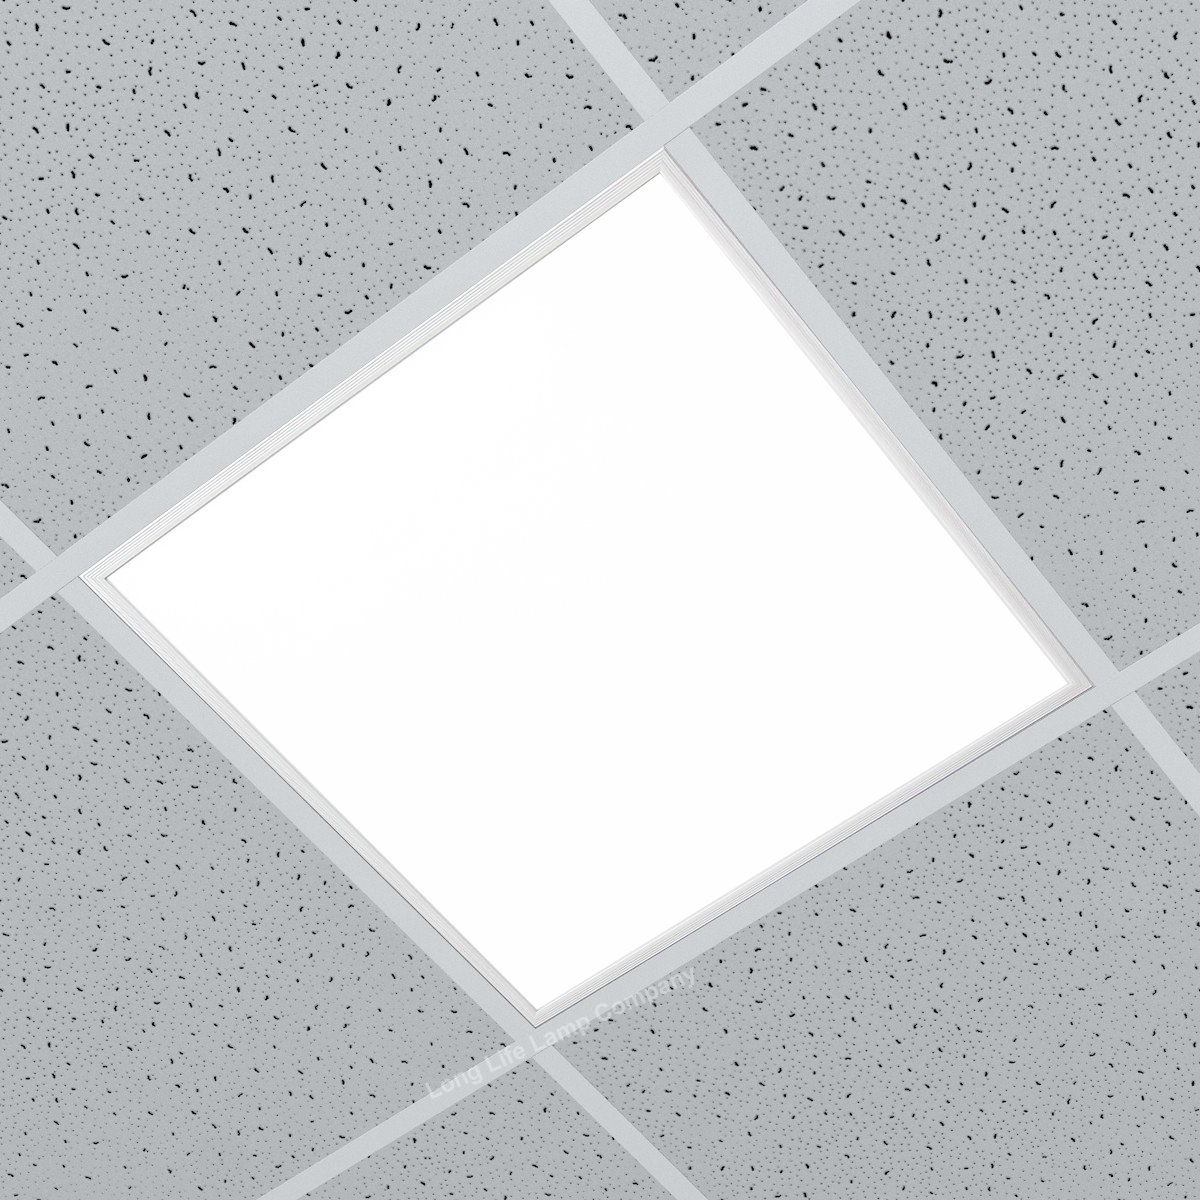 48w ceiling suspended recessed led panel 4000k cool white led 600 x 600 ceiling suspended recessed led panel white light 48w office salon led doublecrazyfo Images